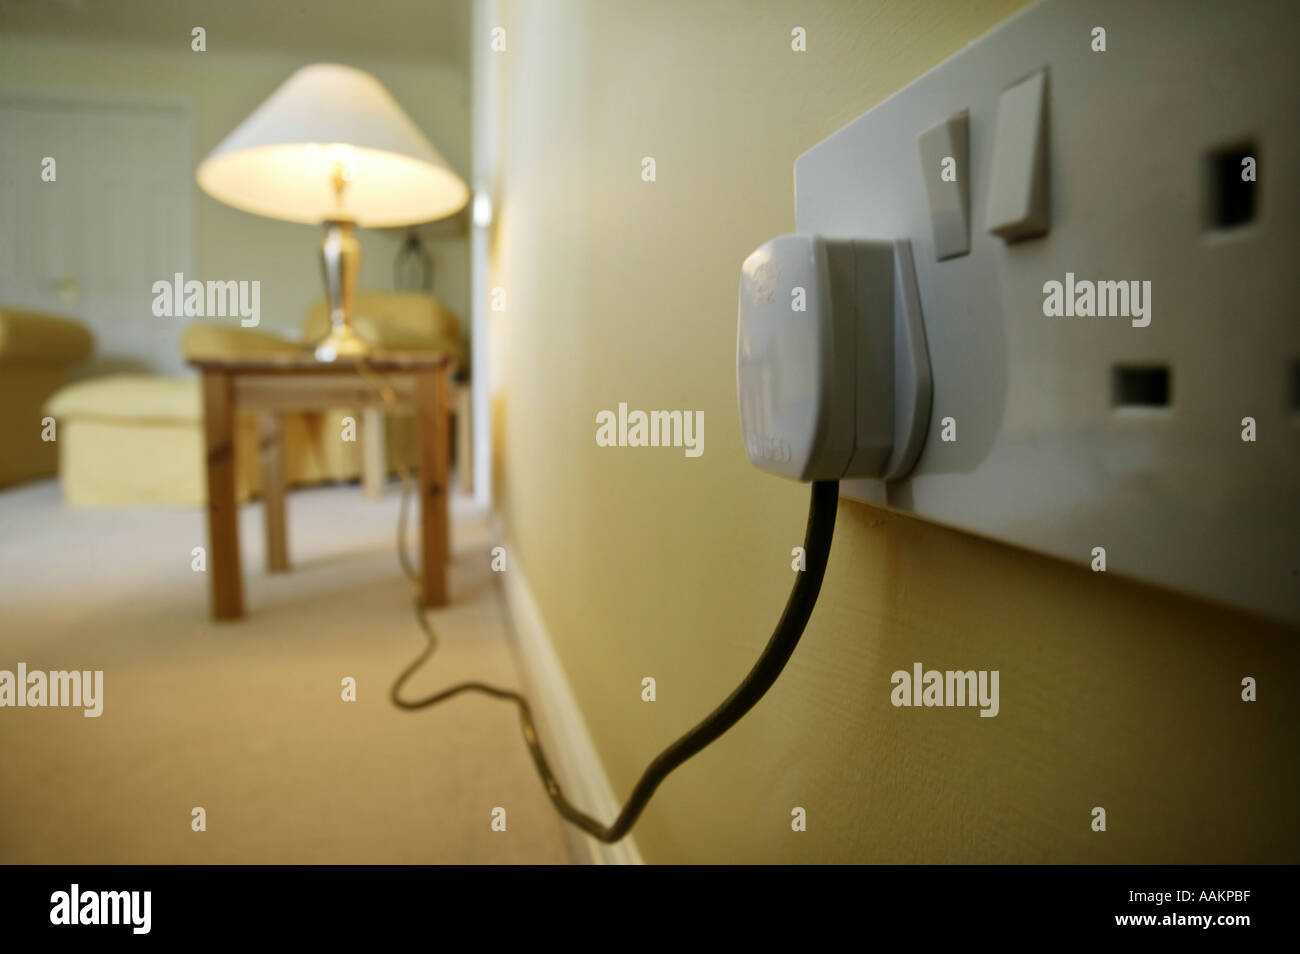 A Table Lamp Plugged Into A Wall Socket In The Uk Stock